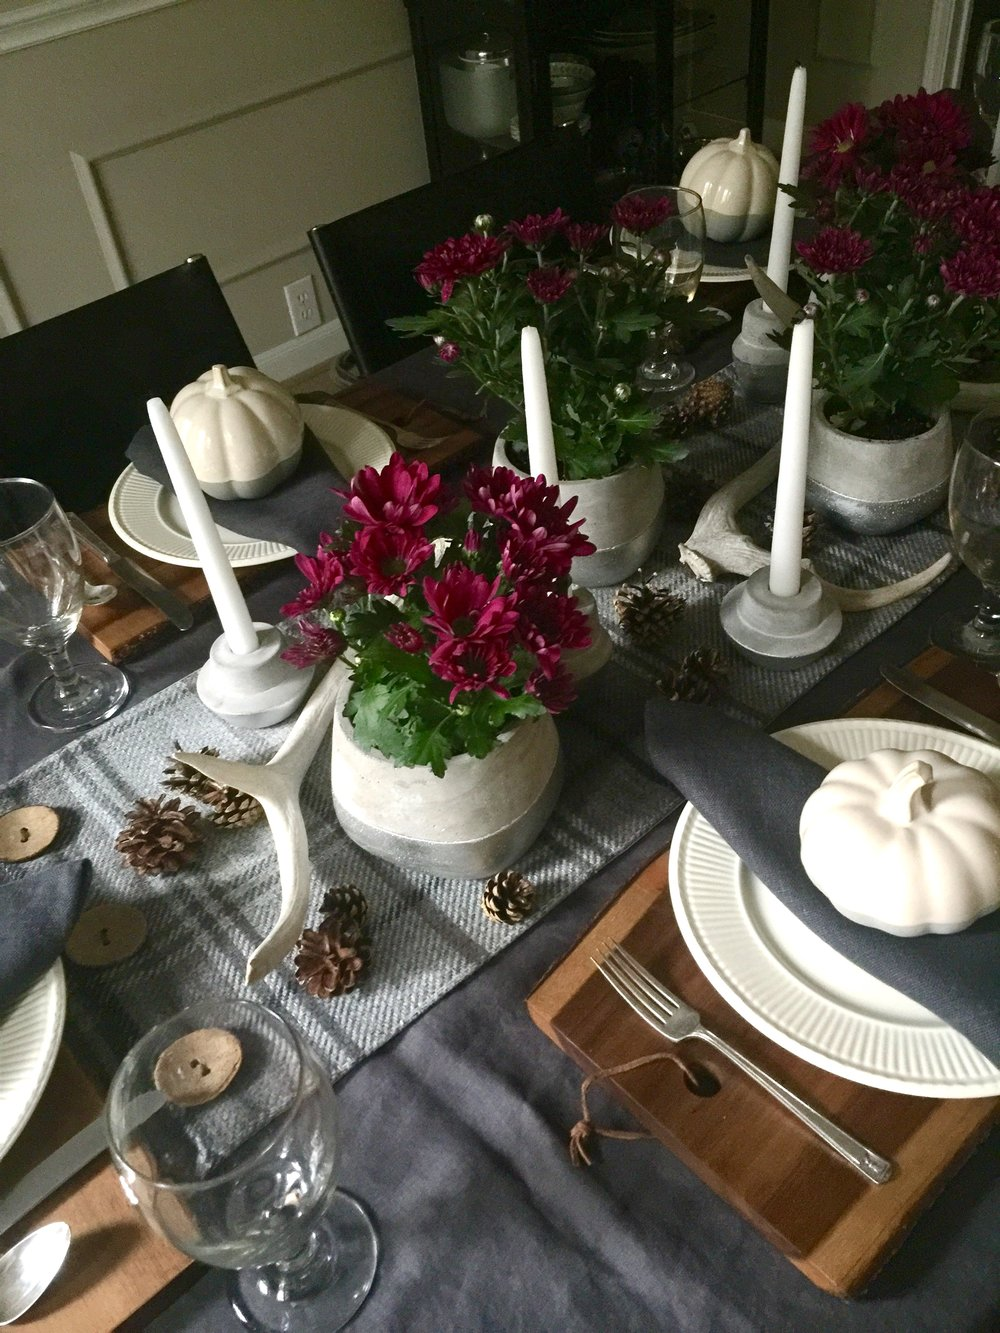 Dining room tablesetting with centerpiece for Thanksgiving #tabletop #tablesetting #thanksgiving #entertaining #antlers #creamware #pumpkins #cuttingboard